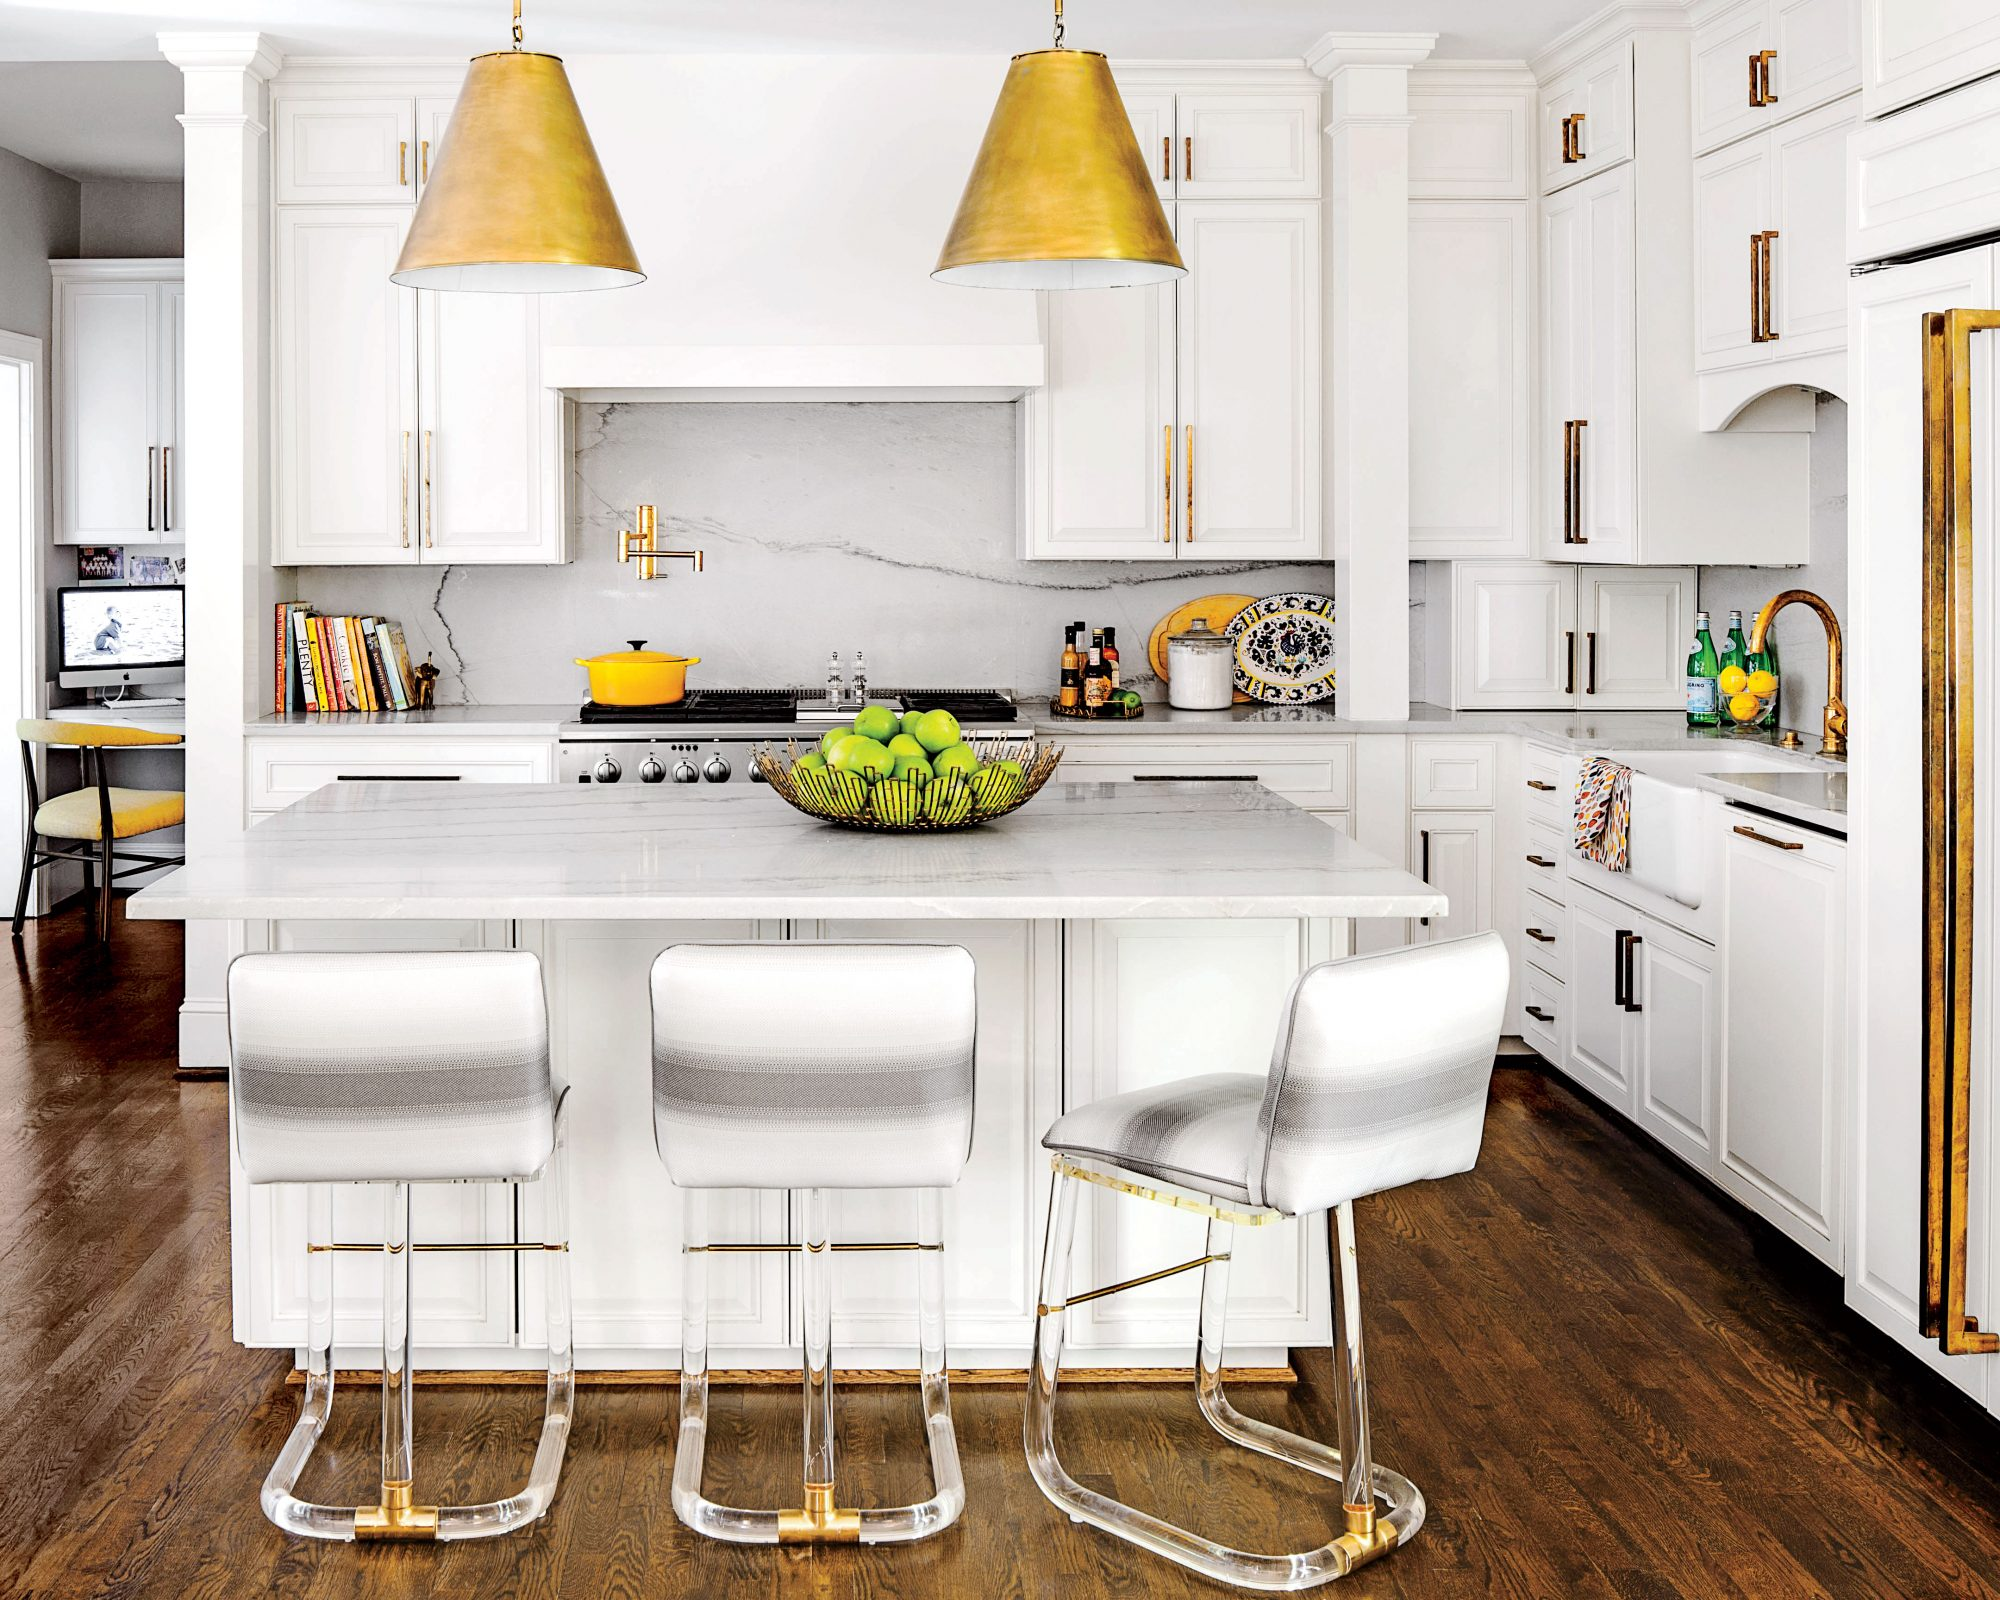 White Kitchen with Marble Countertops and Acrylic Stools